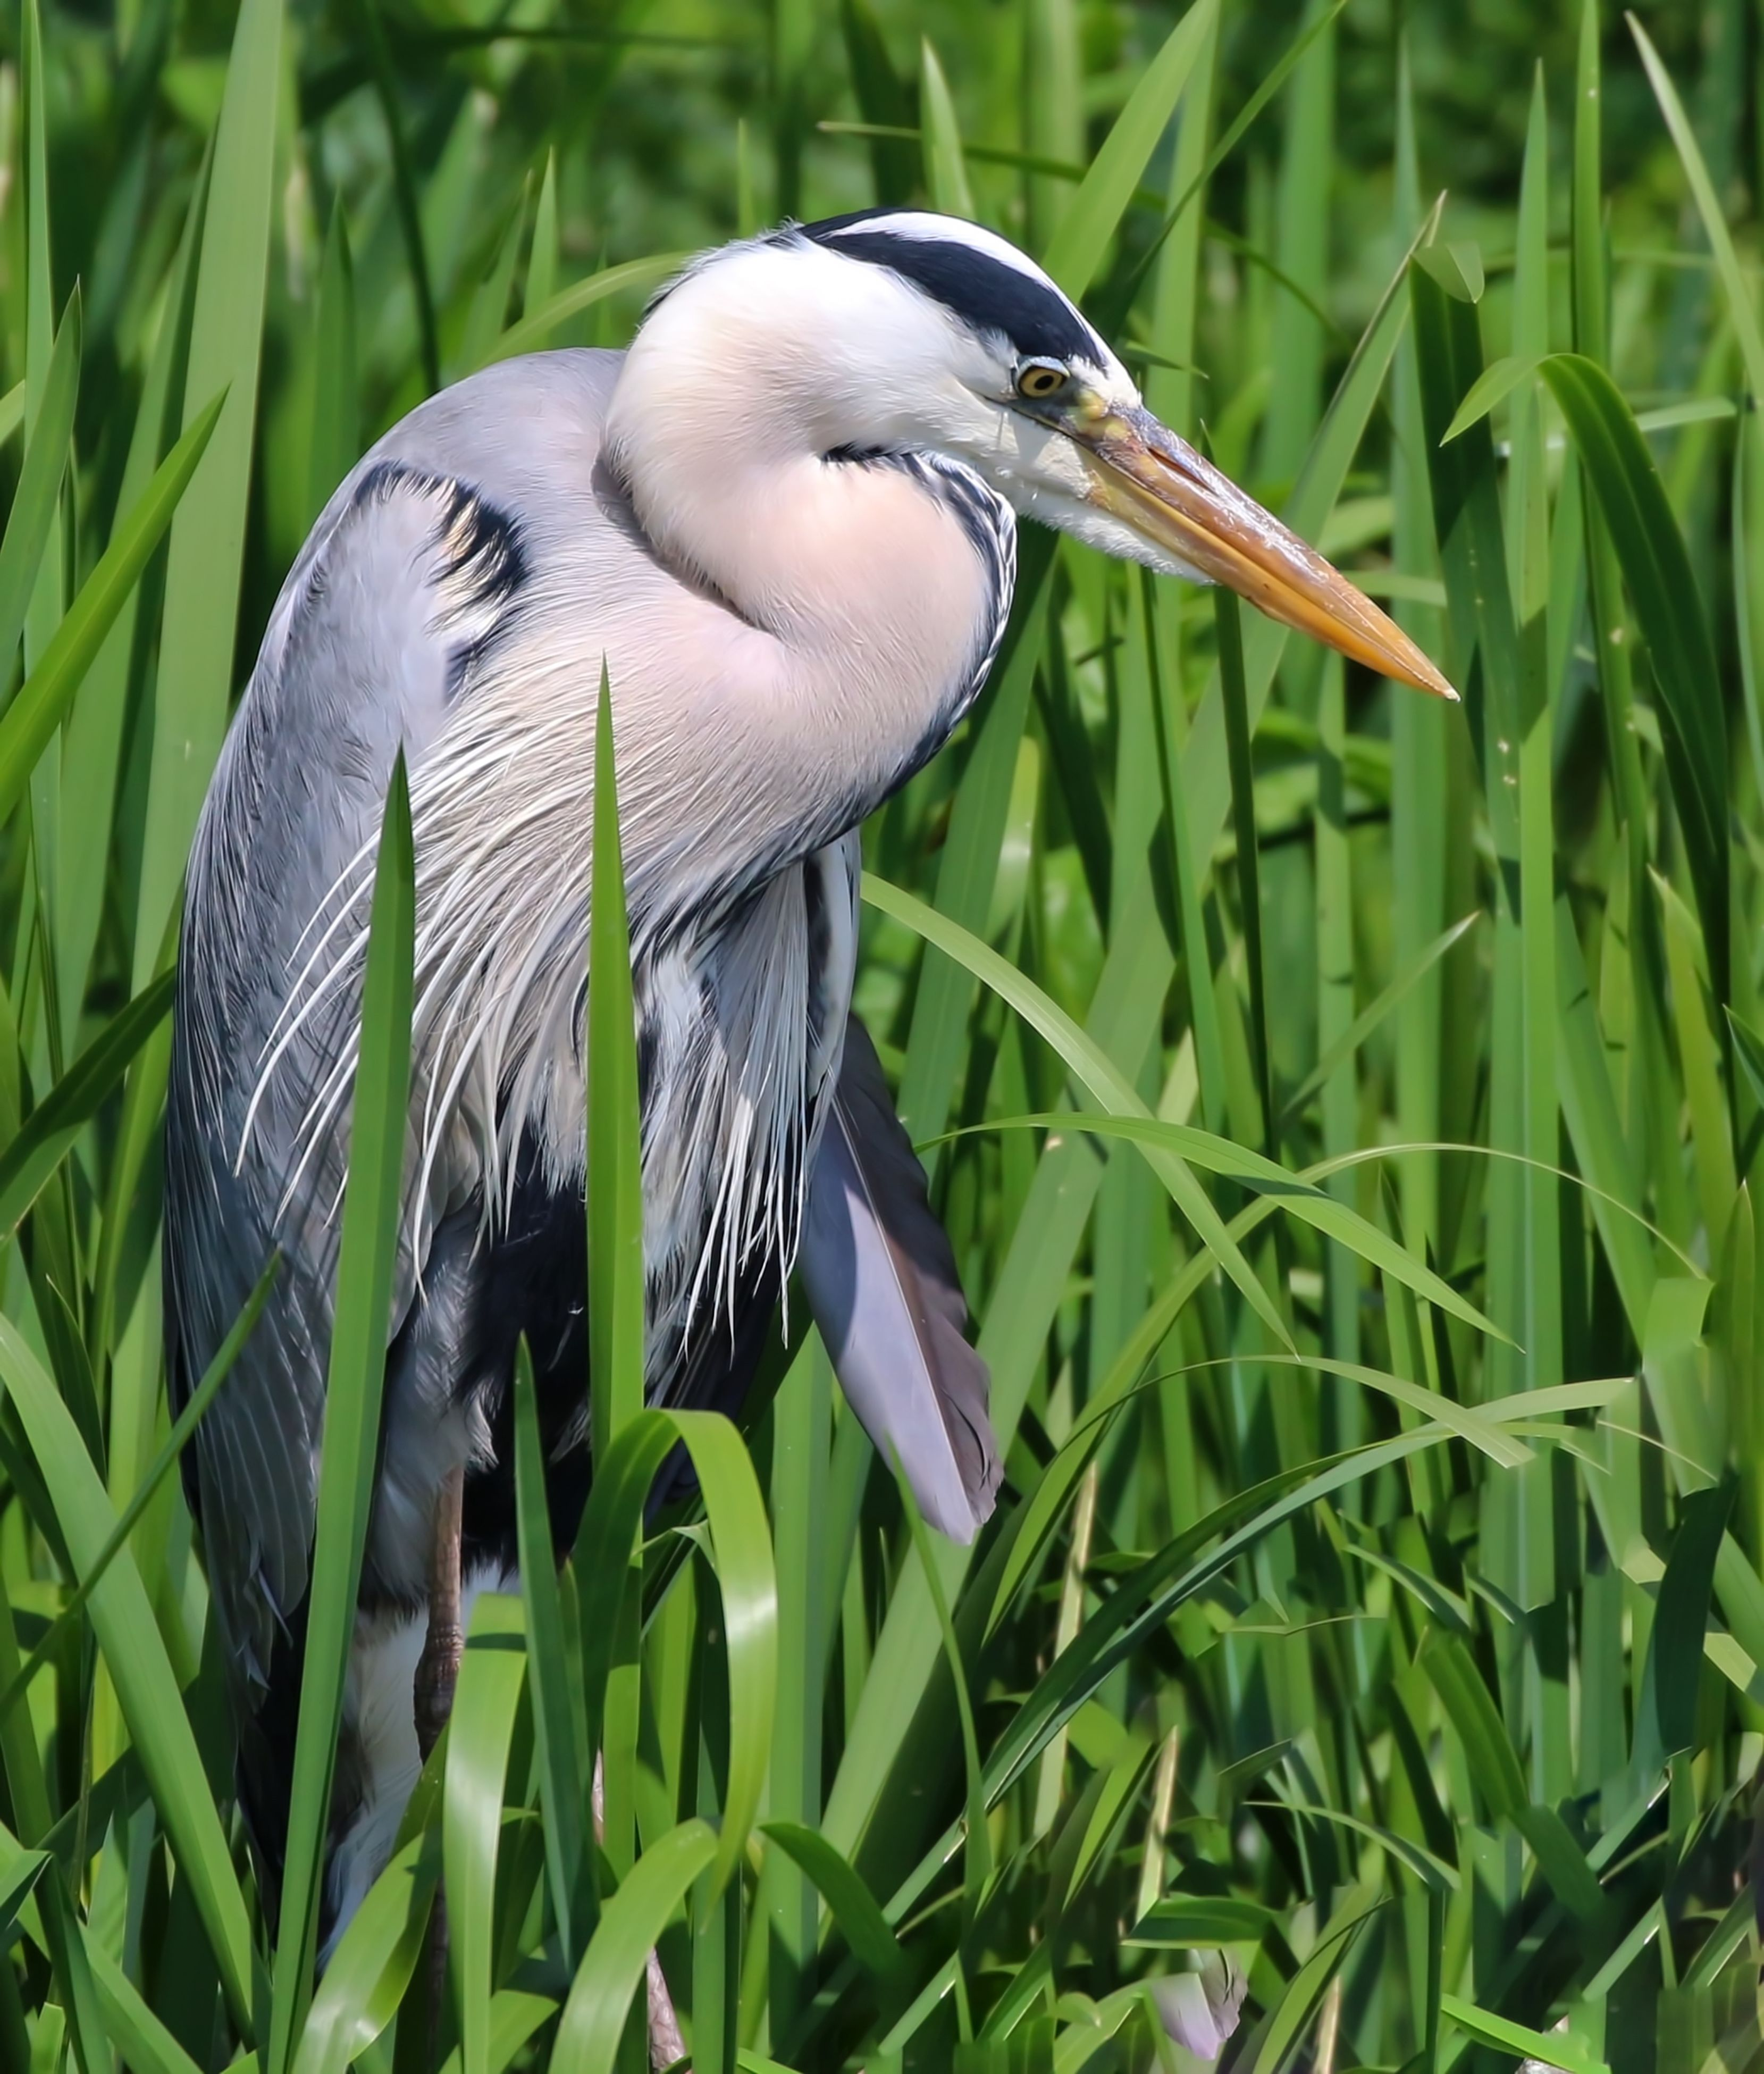 Gray Heron In Field During Sunny Day